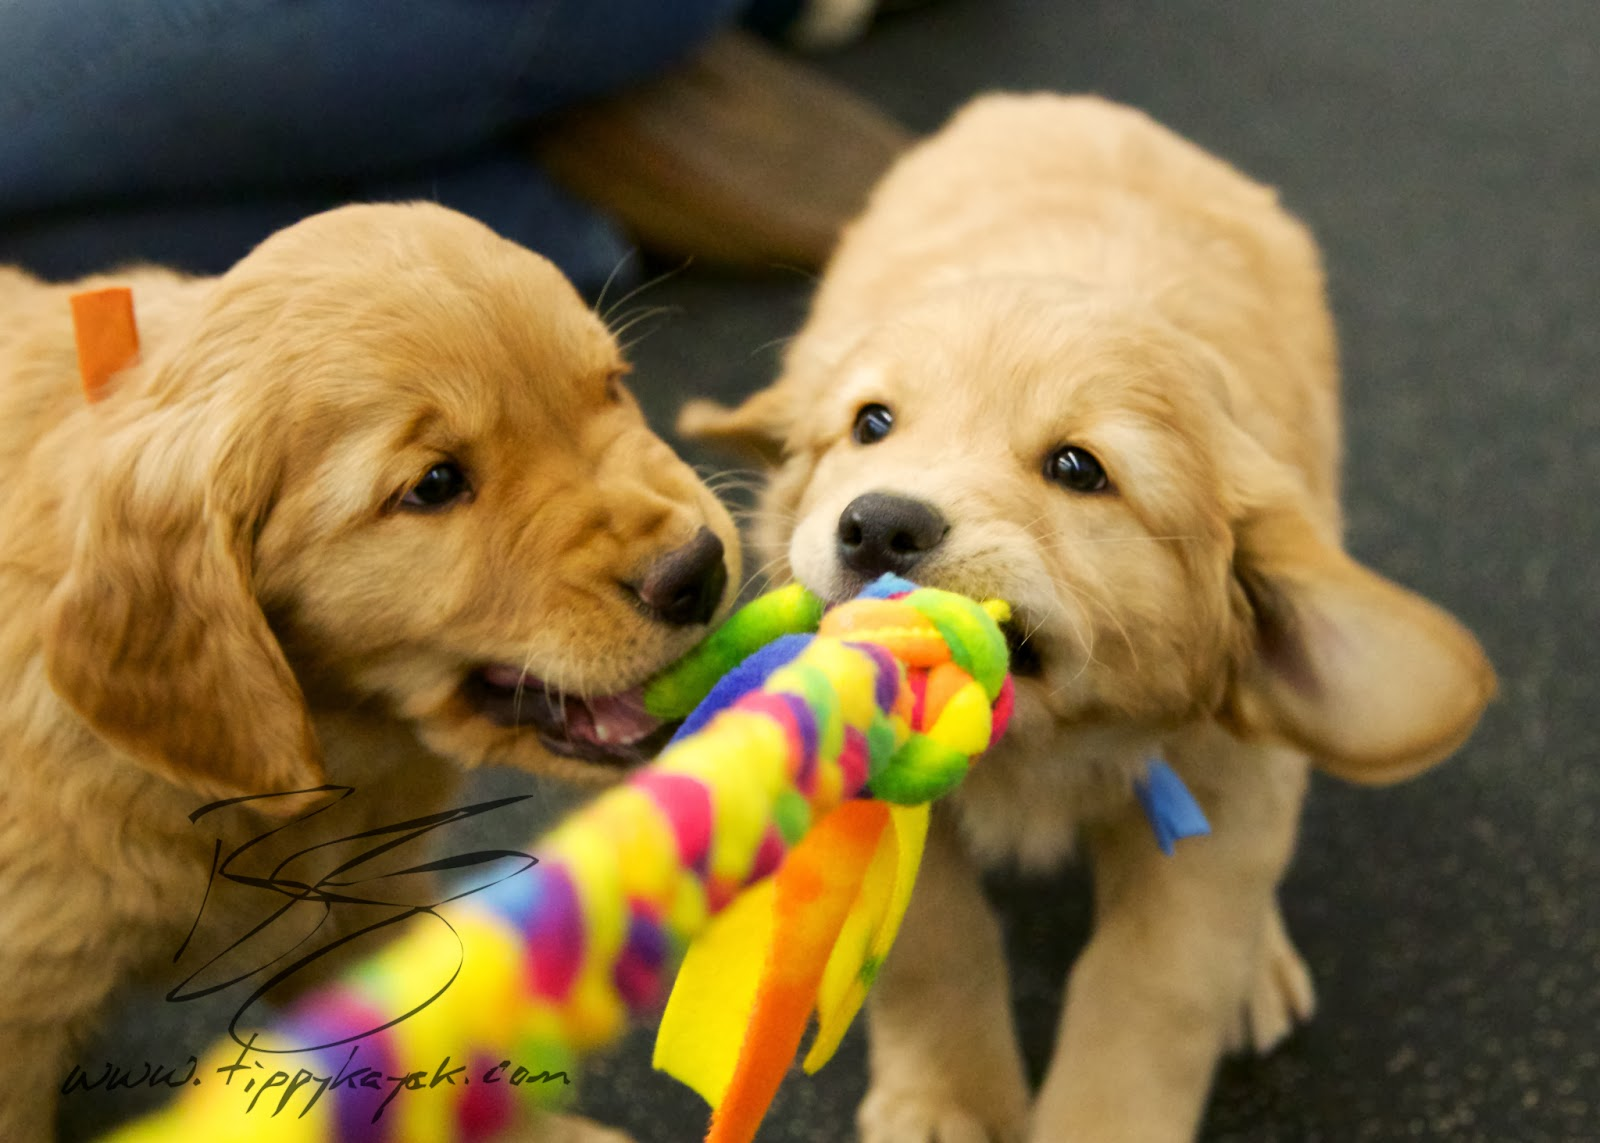 At eight weeks, puppies are typically interested in social interactions, and they tend to explore the world with their mouths.